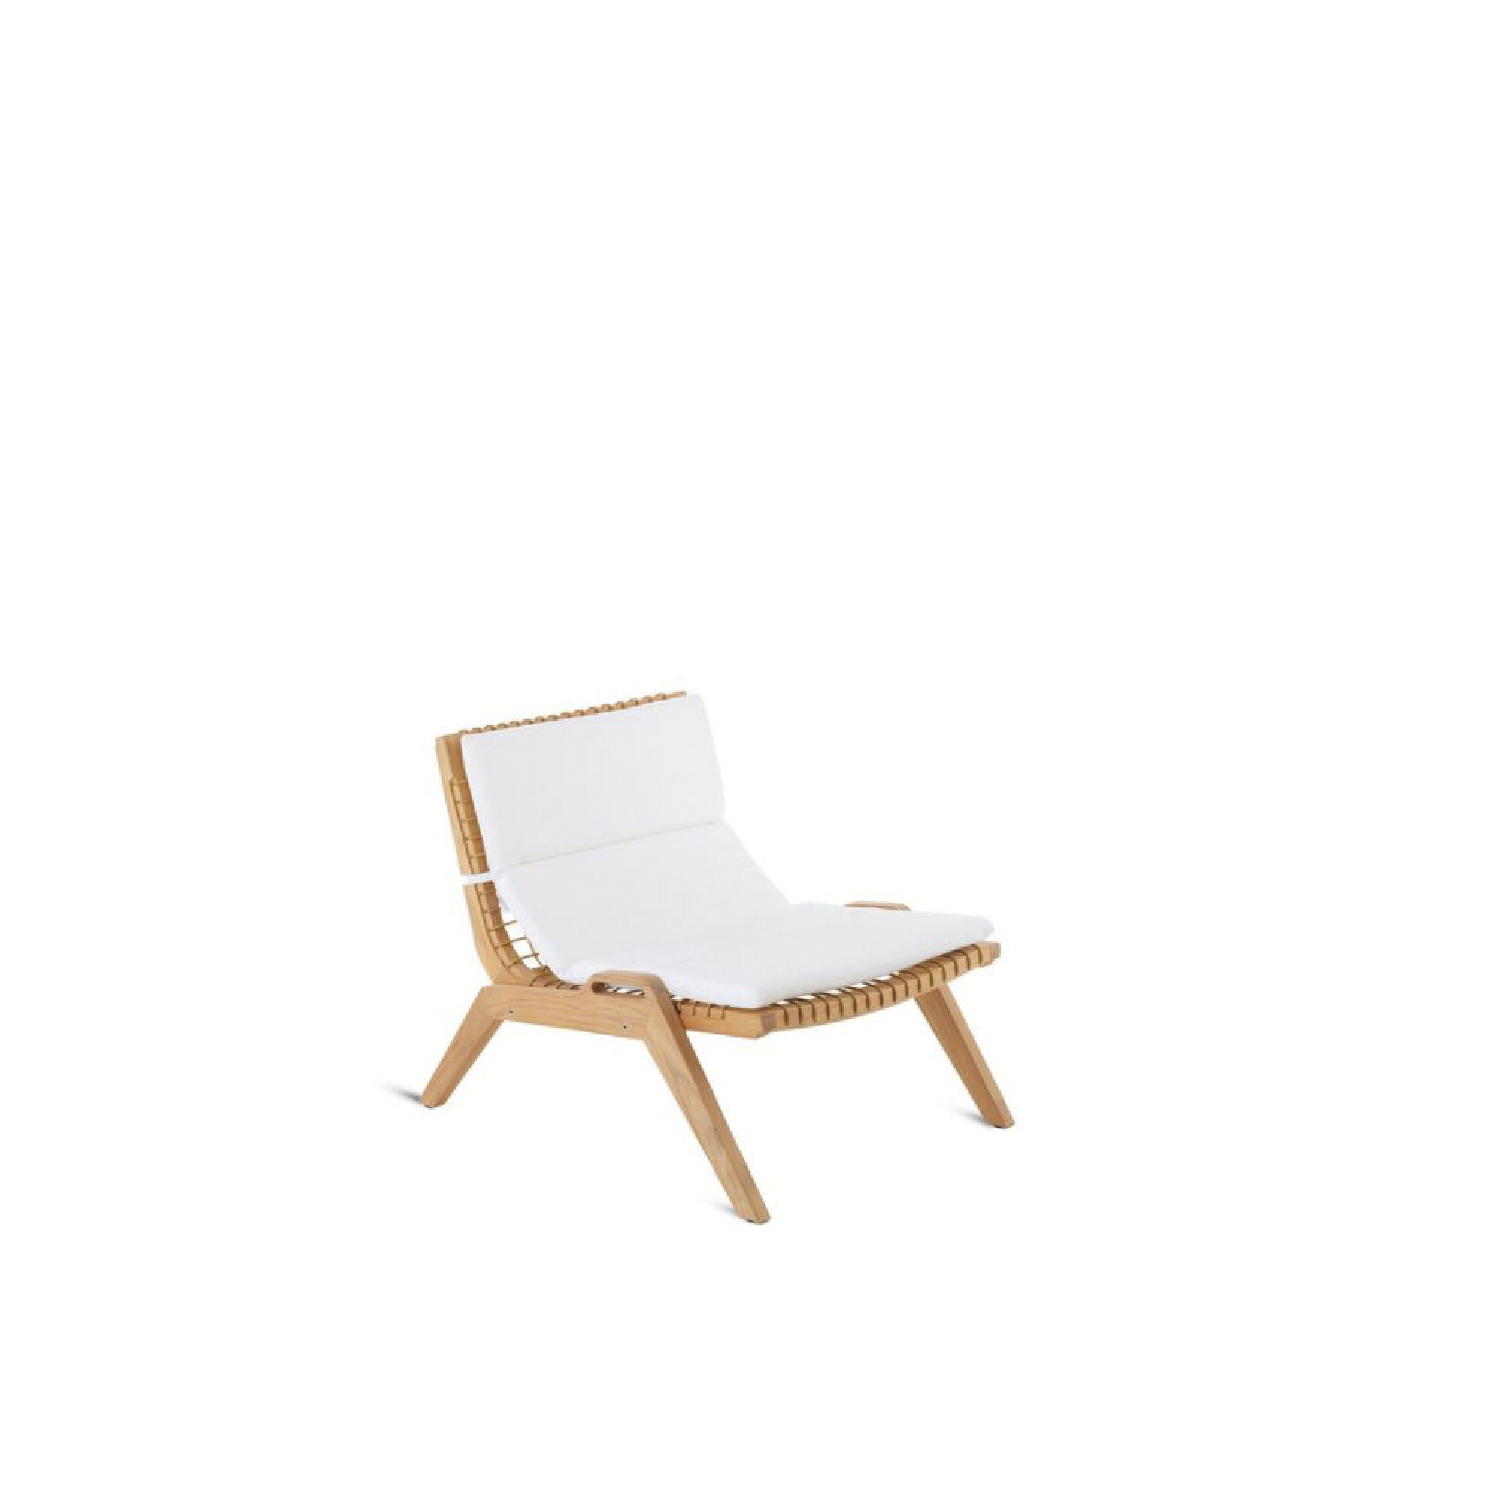 Synthesis Stackable Lounge Armchair - Synthesis is a rich, versatile line characterized by the original combination of teak and synthetic fibre. This union creates a unique large mesh product, creating an elegant collection of pure designs.  Structure: teak and Synthetic fibre WaProLace® wicker natural. Cushions: removable covers in 100% acrylic fabric, Diamante colour | Matter of Stuff